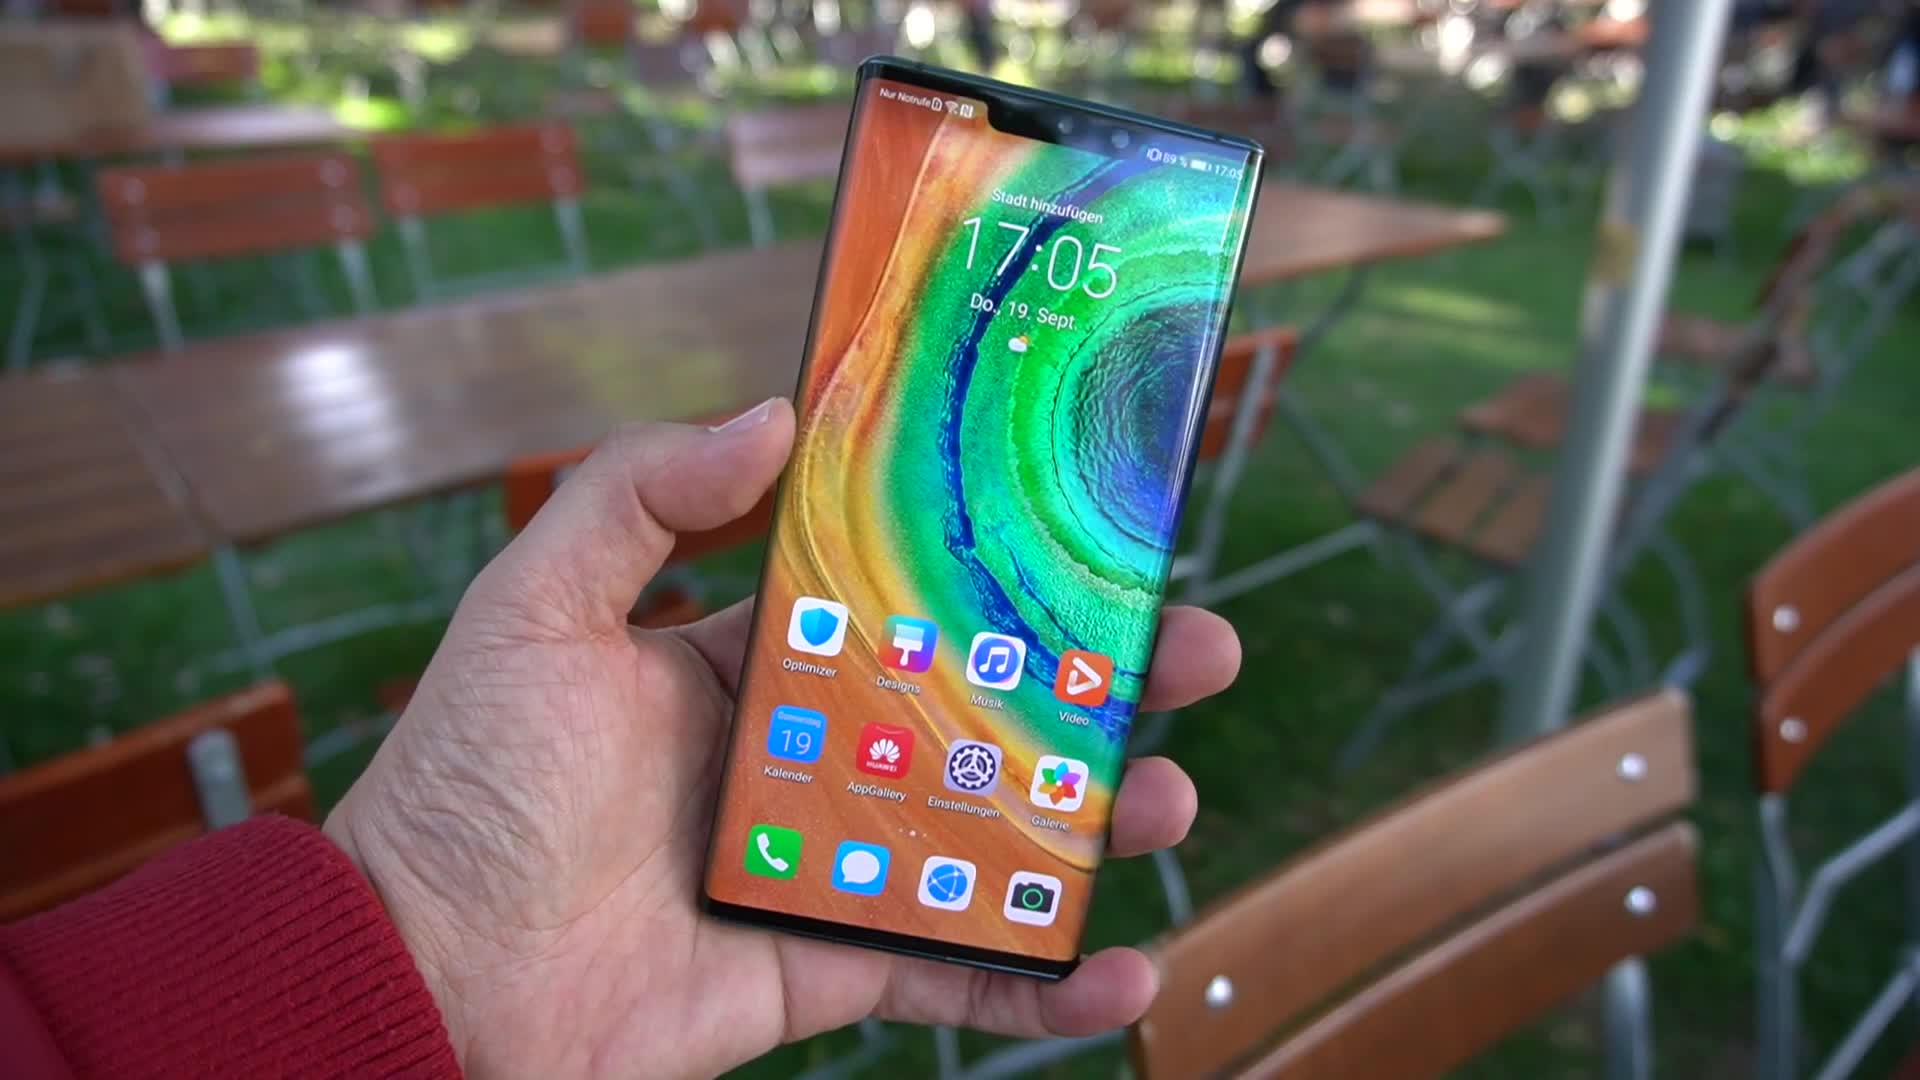 Smartphone, Android, Huawei, Hands-On, Huawei Mate 30 Pro, Mate 30 Pro